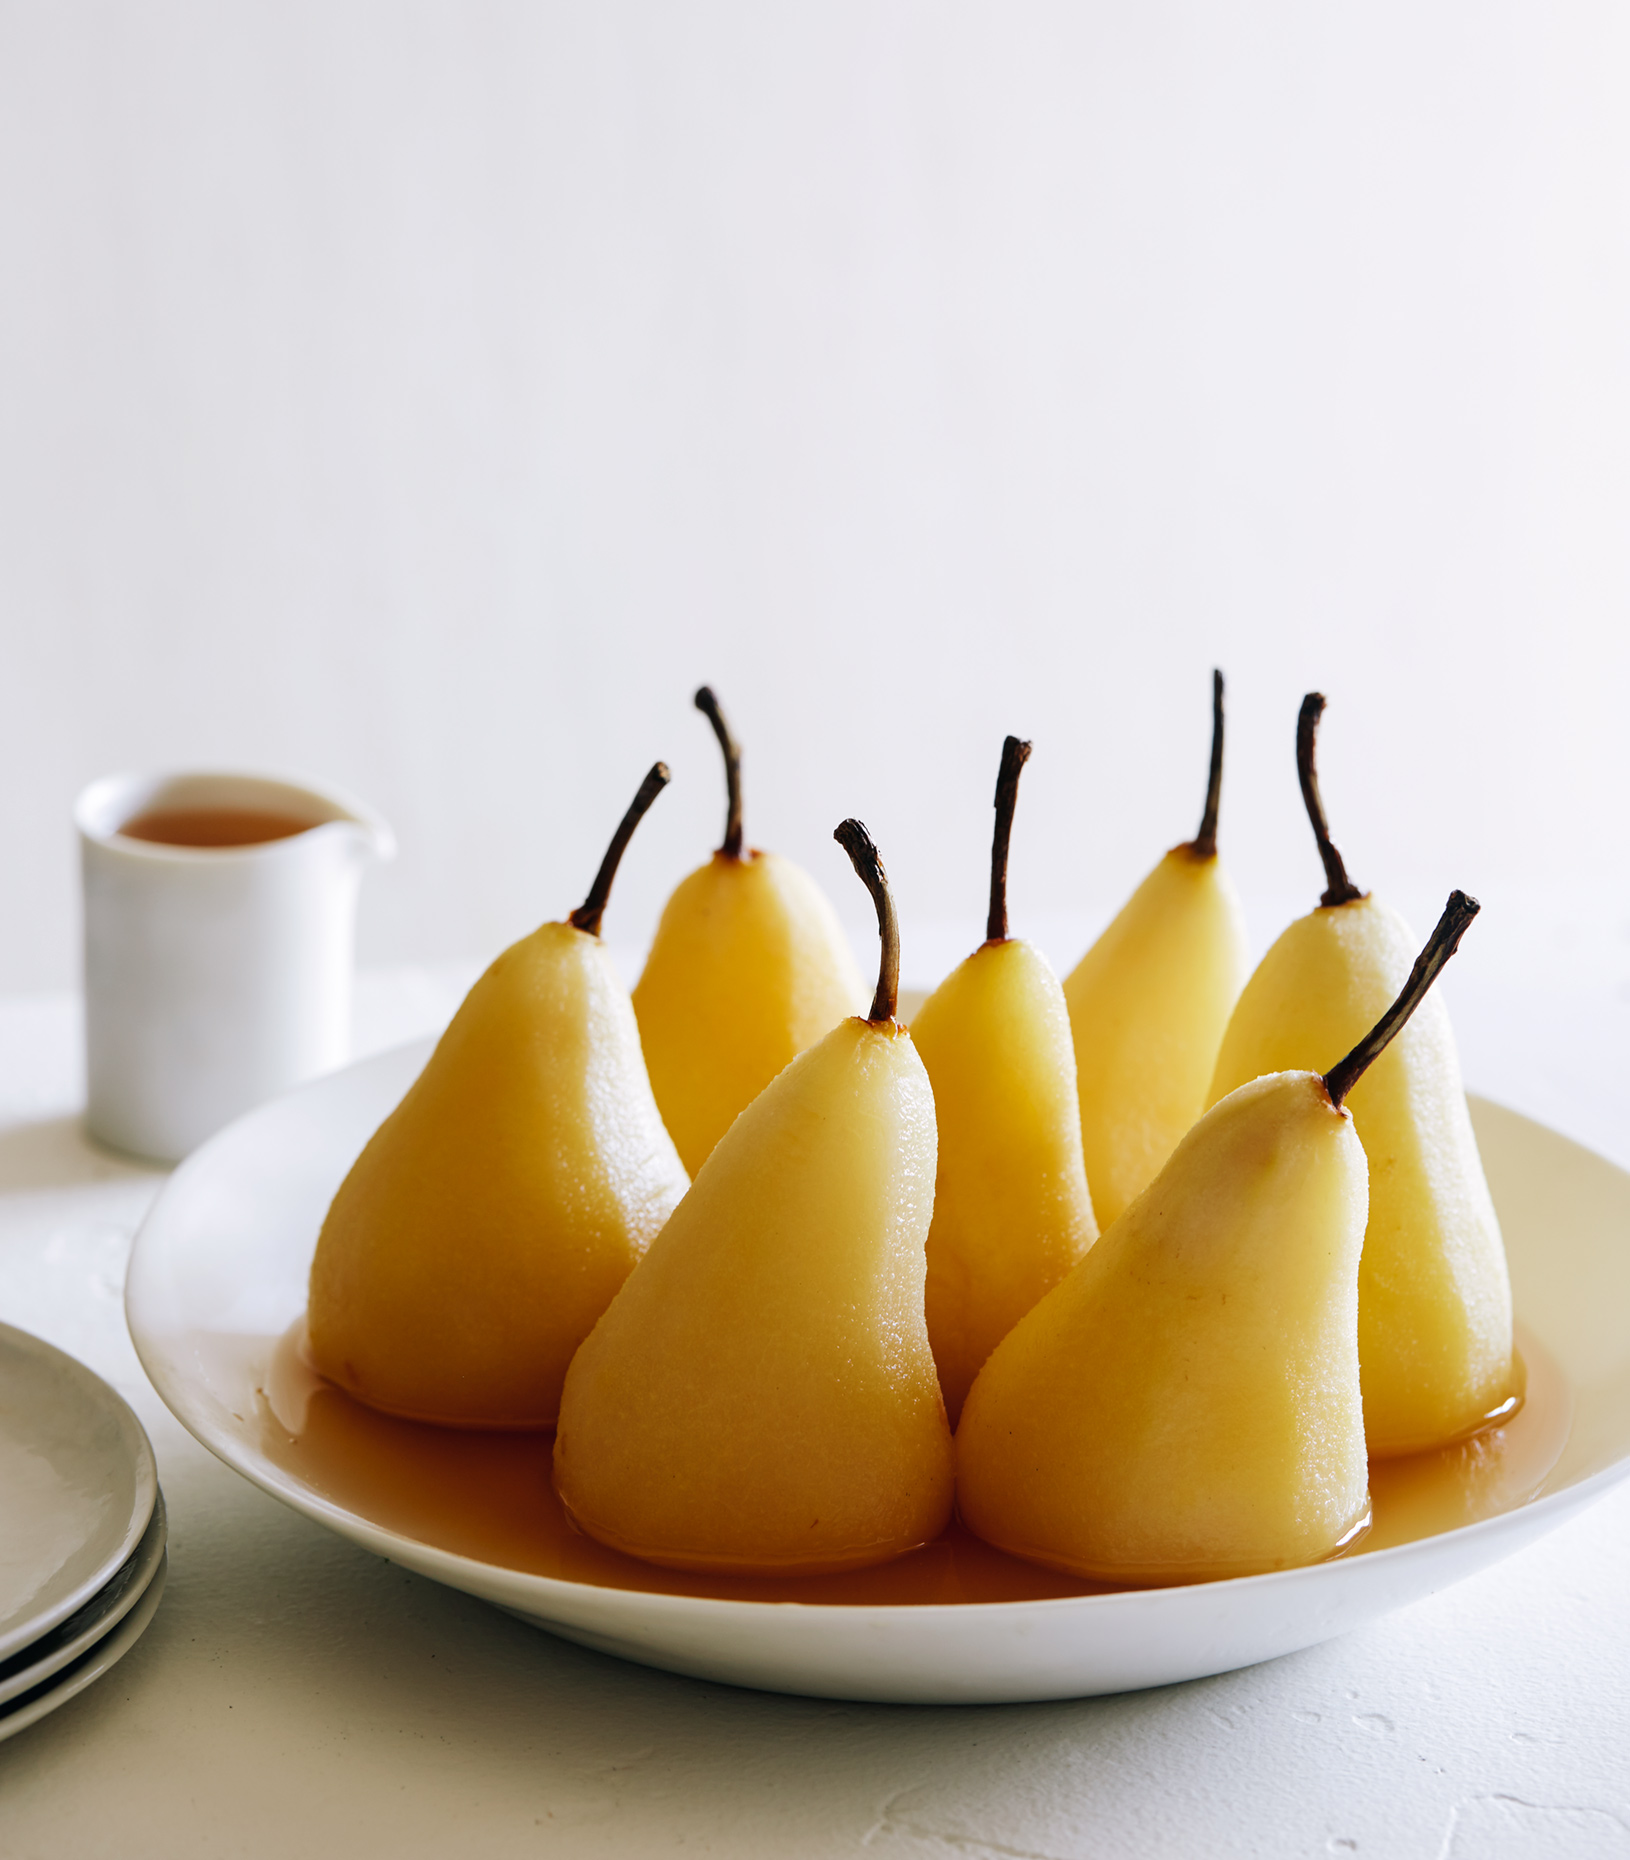 Poached Pears - by LA Food Photographer